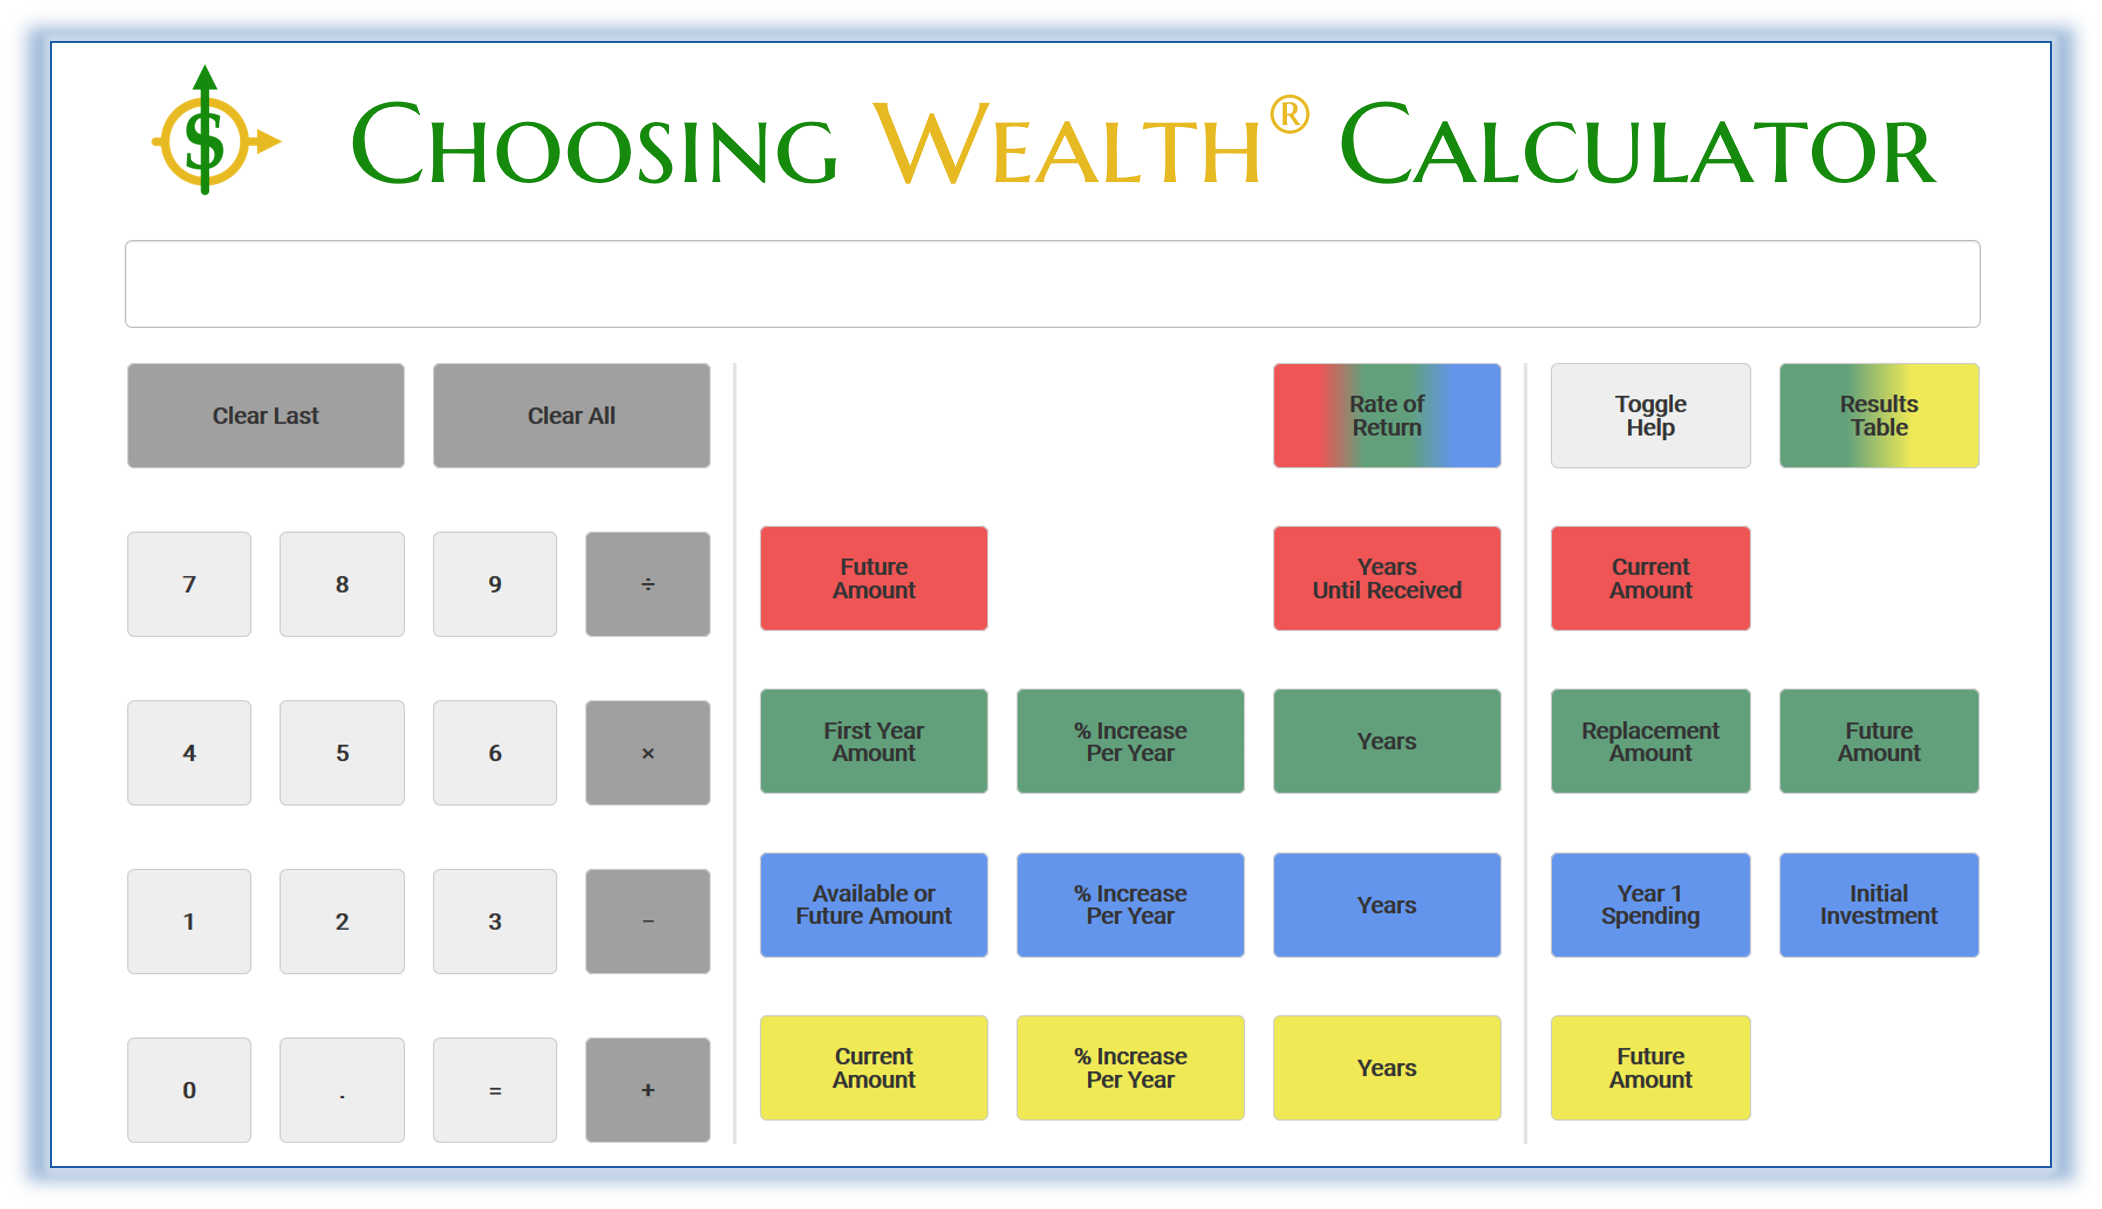 Image of Choosing Wealth® Calculator face